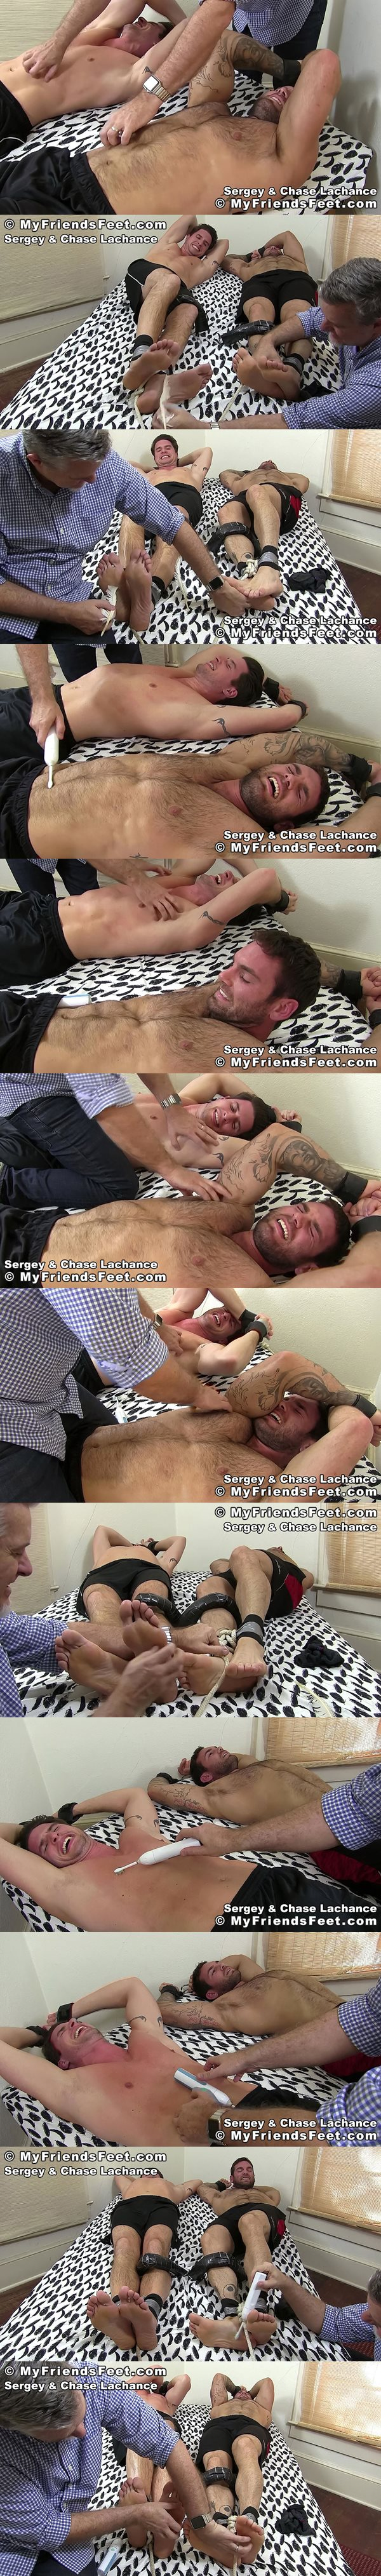 Myfriendsfeet - Chase Lachance and Sergey Tickled Together 02